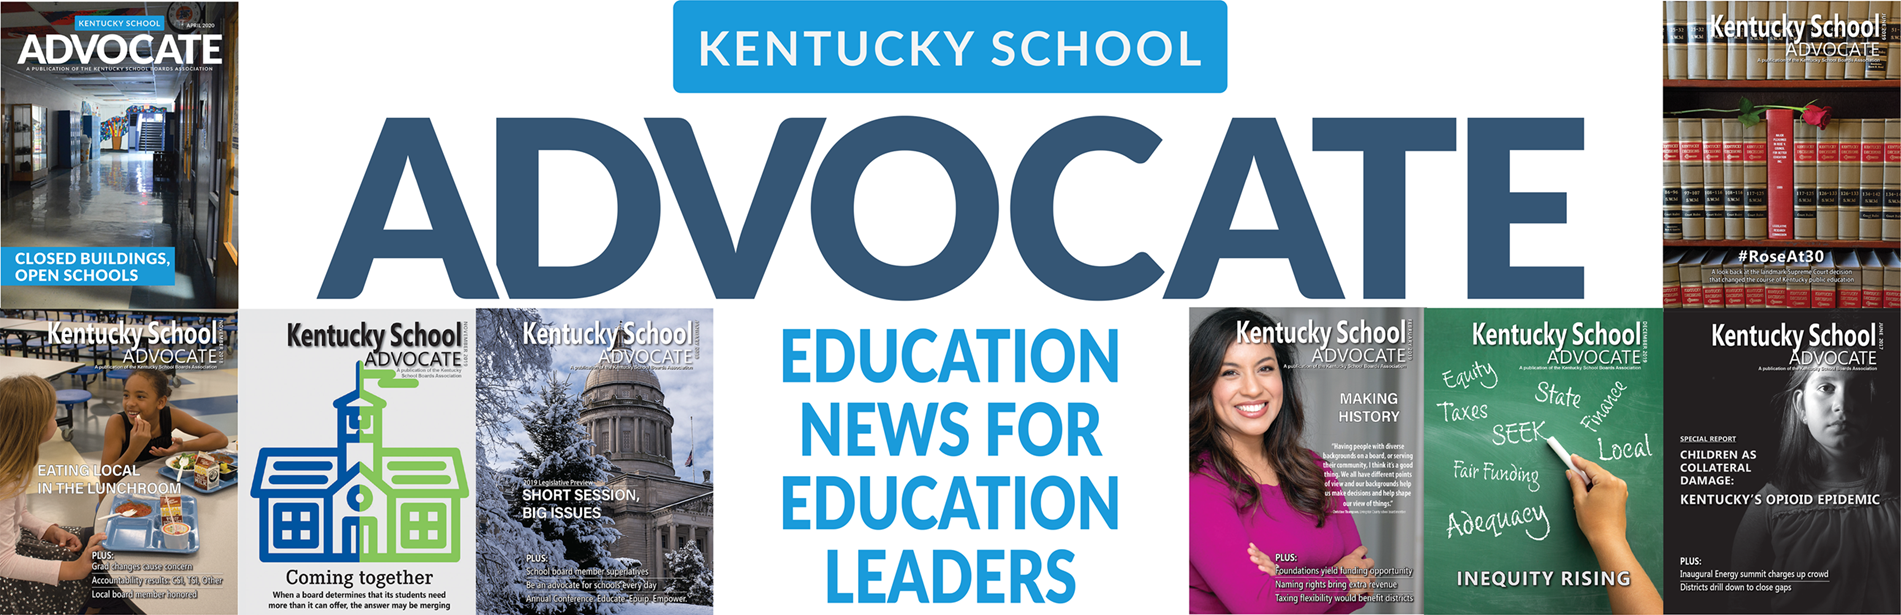 Kentucky School Advocate magazine